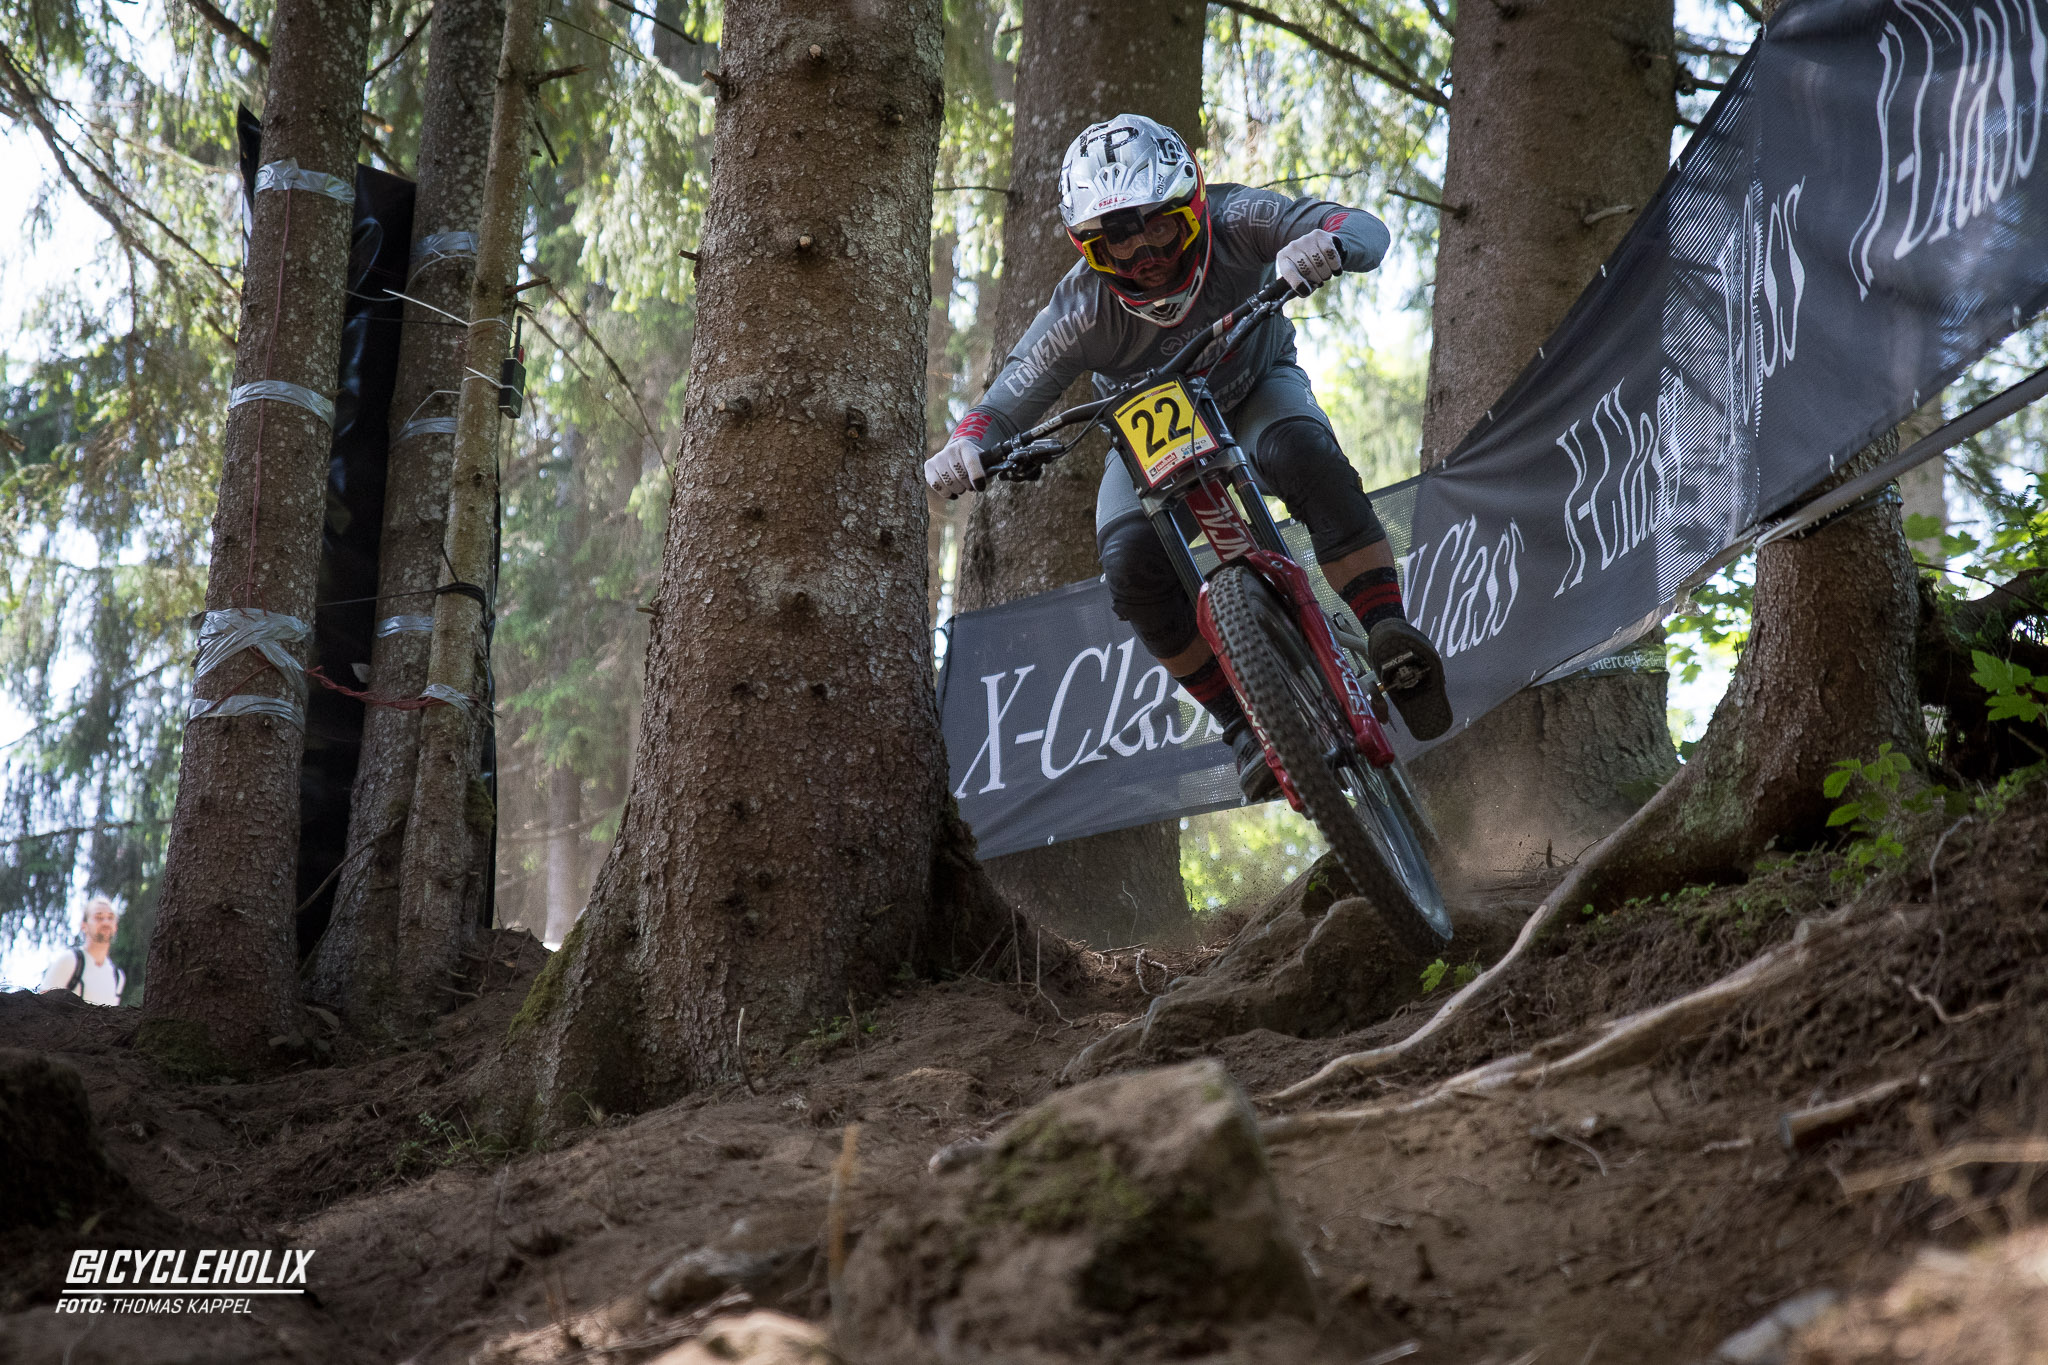 2019 Downhill Worldcup Leogang Finale Action 17 Cycleholix